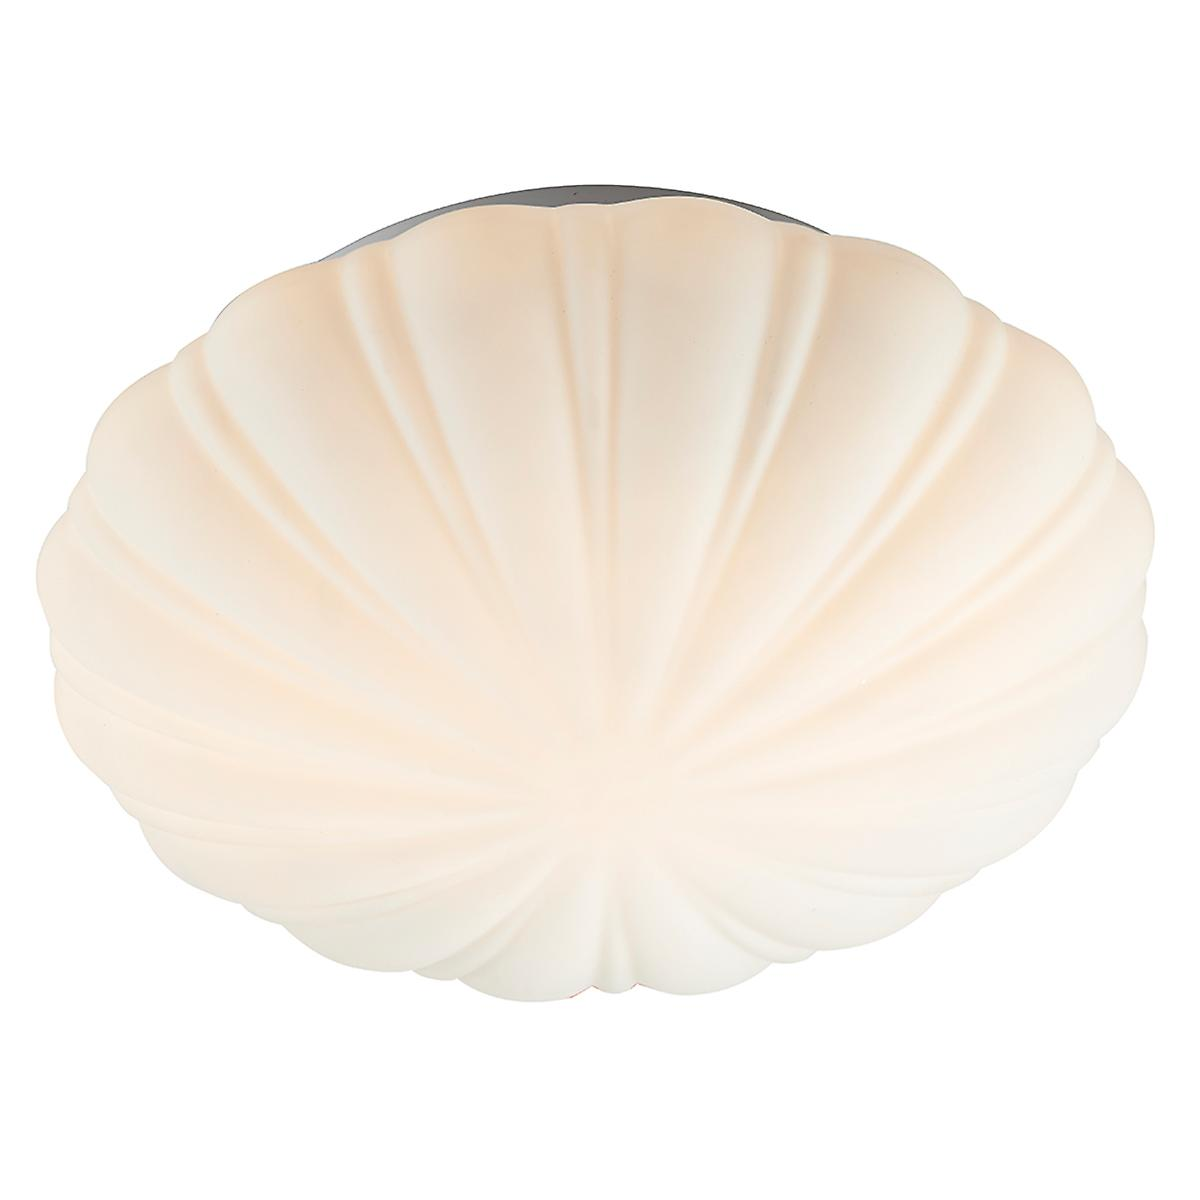 Dar CAF502 Cafe Bathroom Flush Ceiling Light With Shell Design Opal Glass